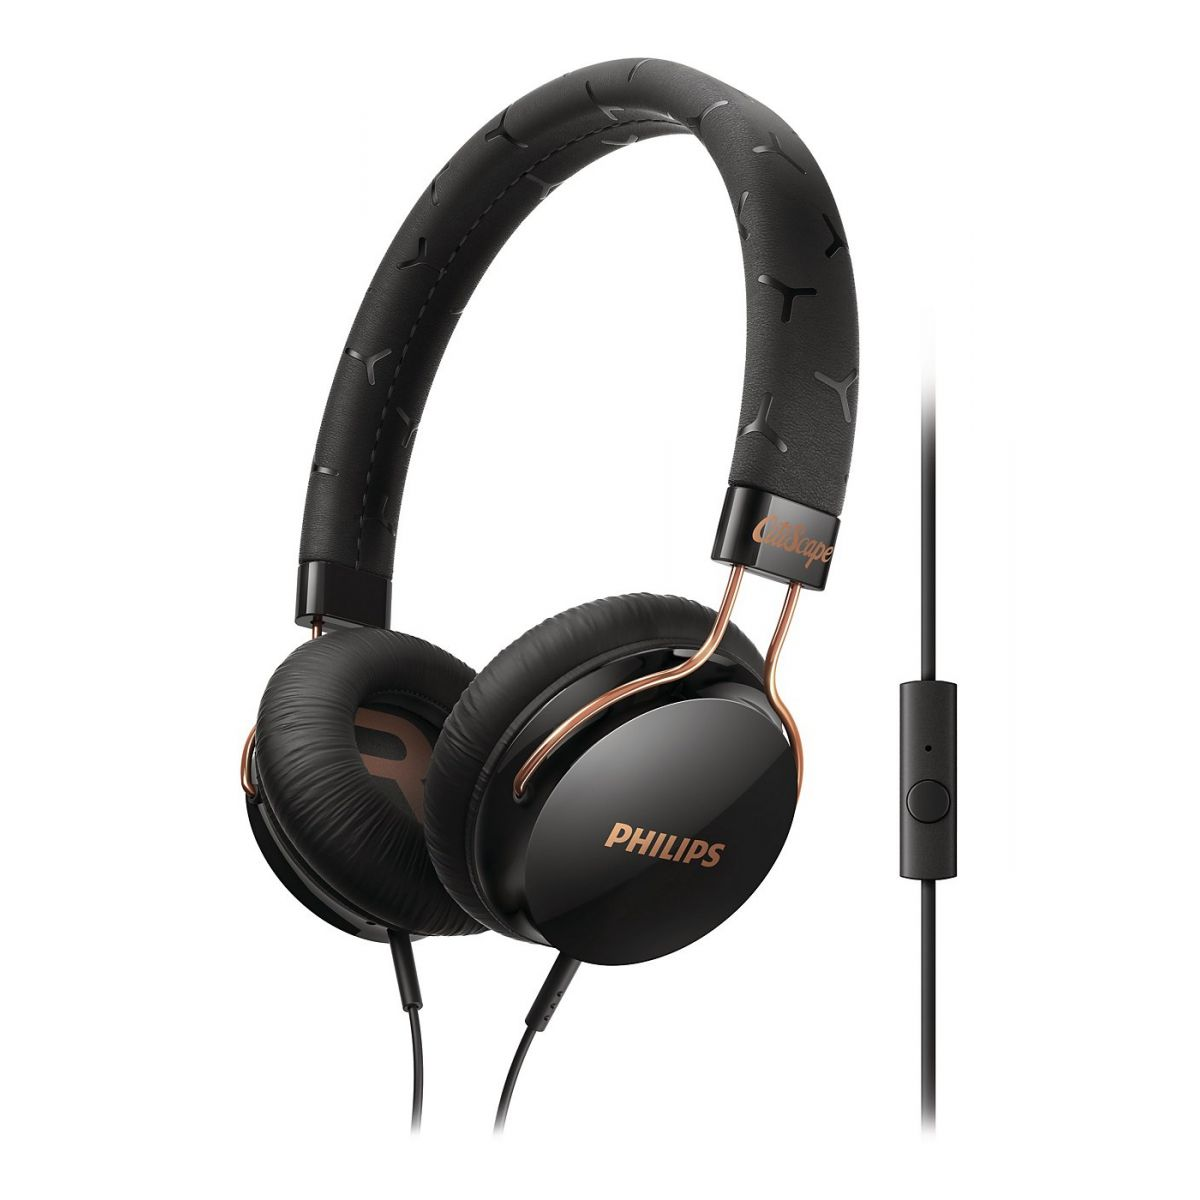 Fone de Ouvido Headphone Com Microfone Citiscape Fixie Philips Shl5305bk00